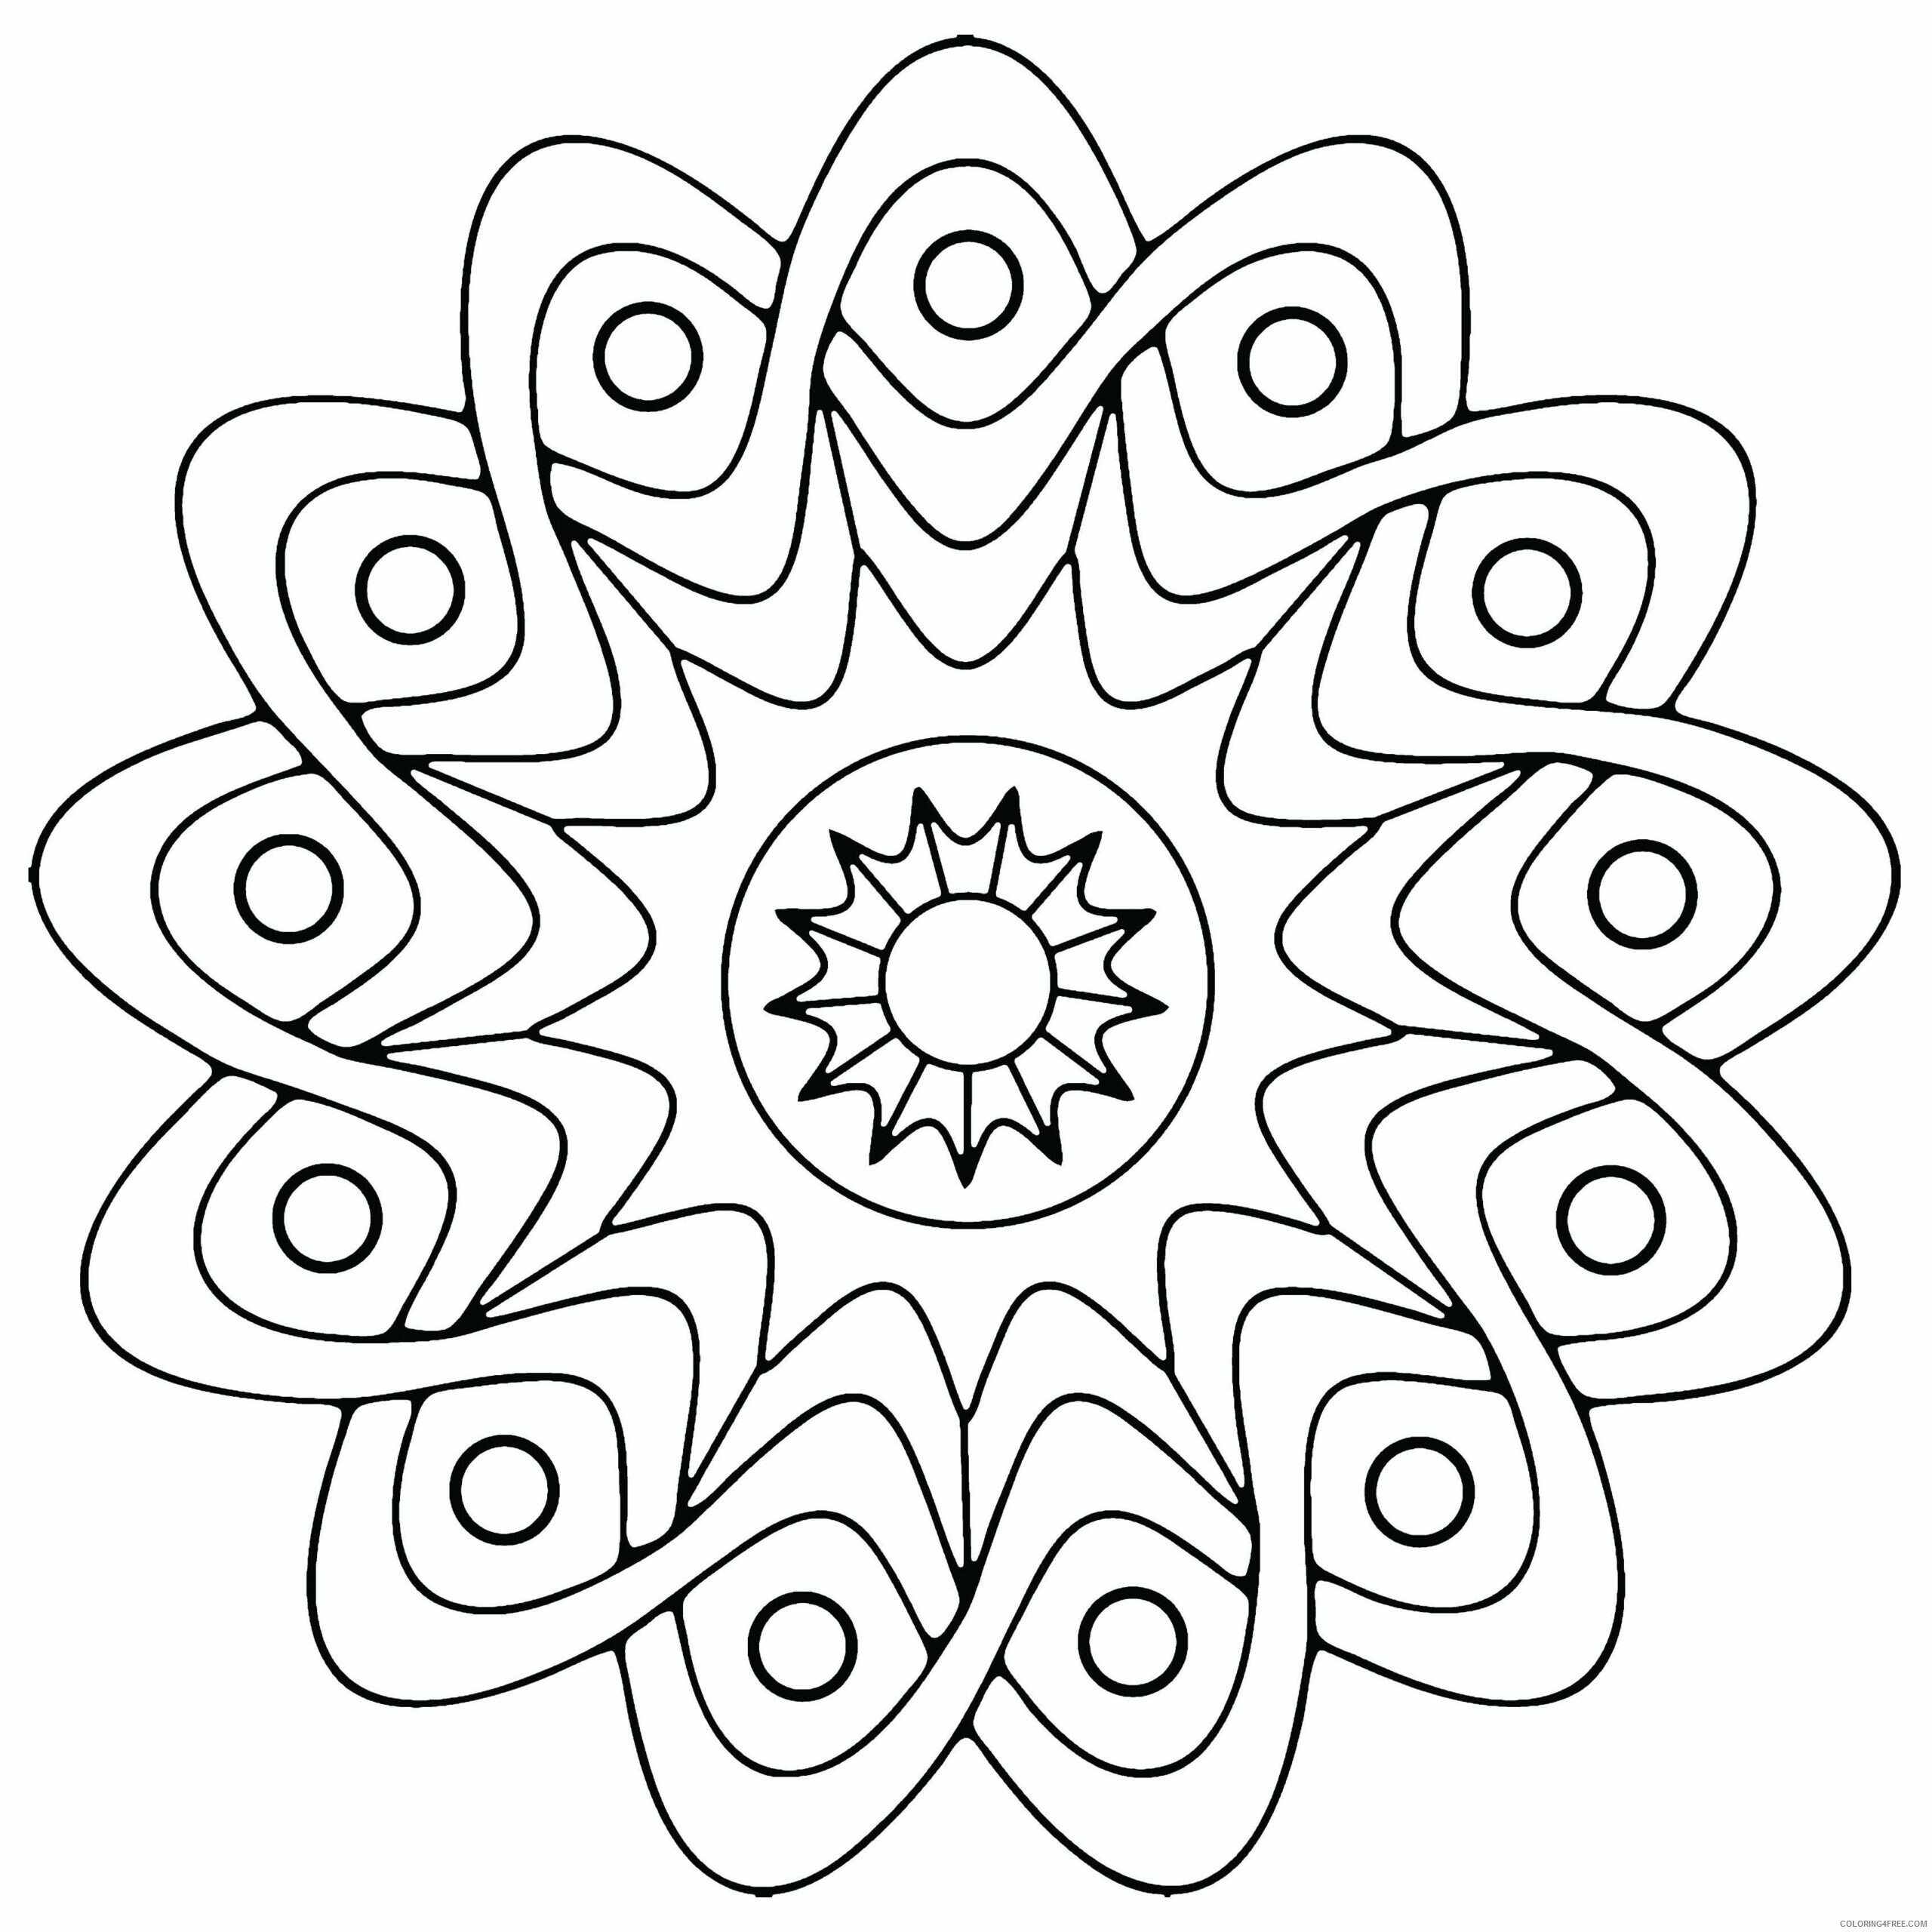 Geometric Design Coloring Pages Adult Geometric Free 2 Printable 2020 428 Coloring4free